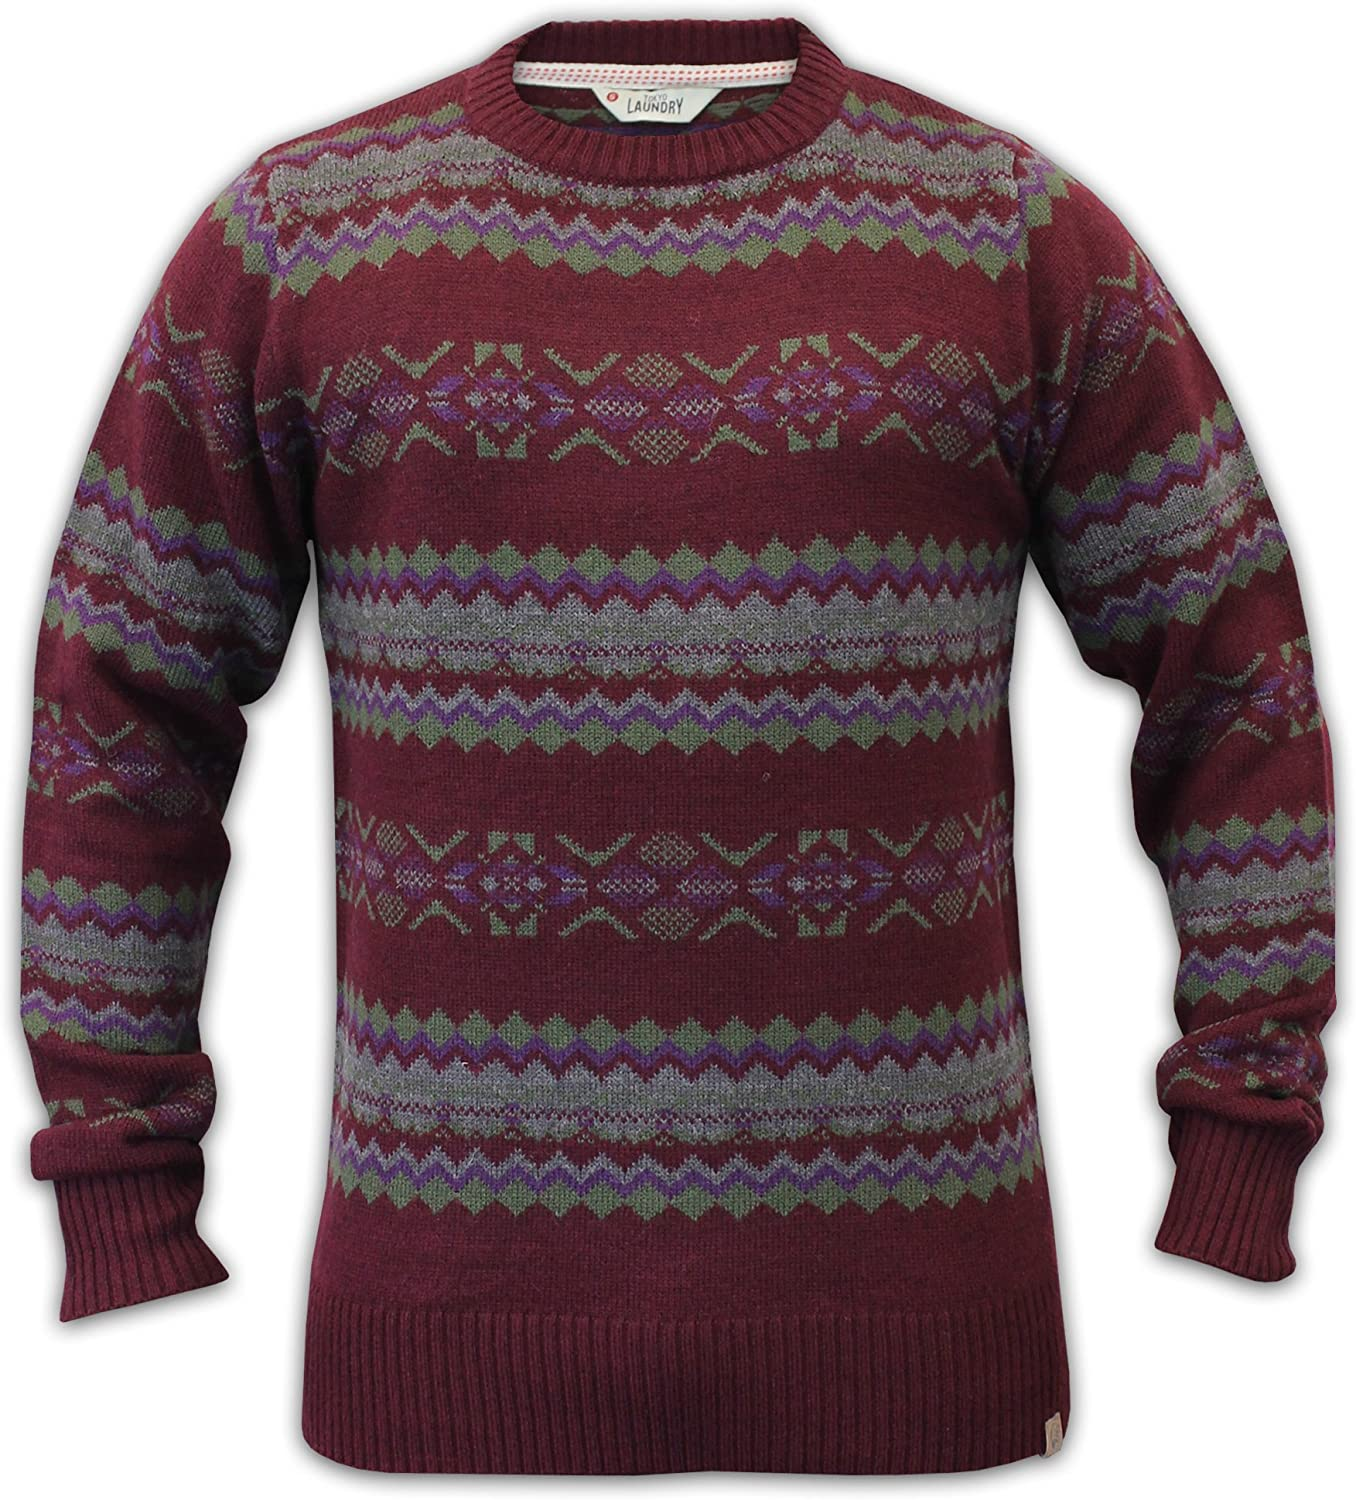 Tokyo Laundry Mens Stylish Wool Mix Knitted Jumpers 1A2957